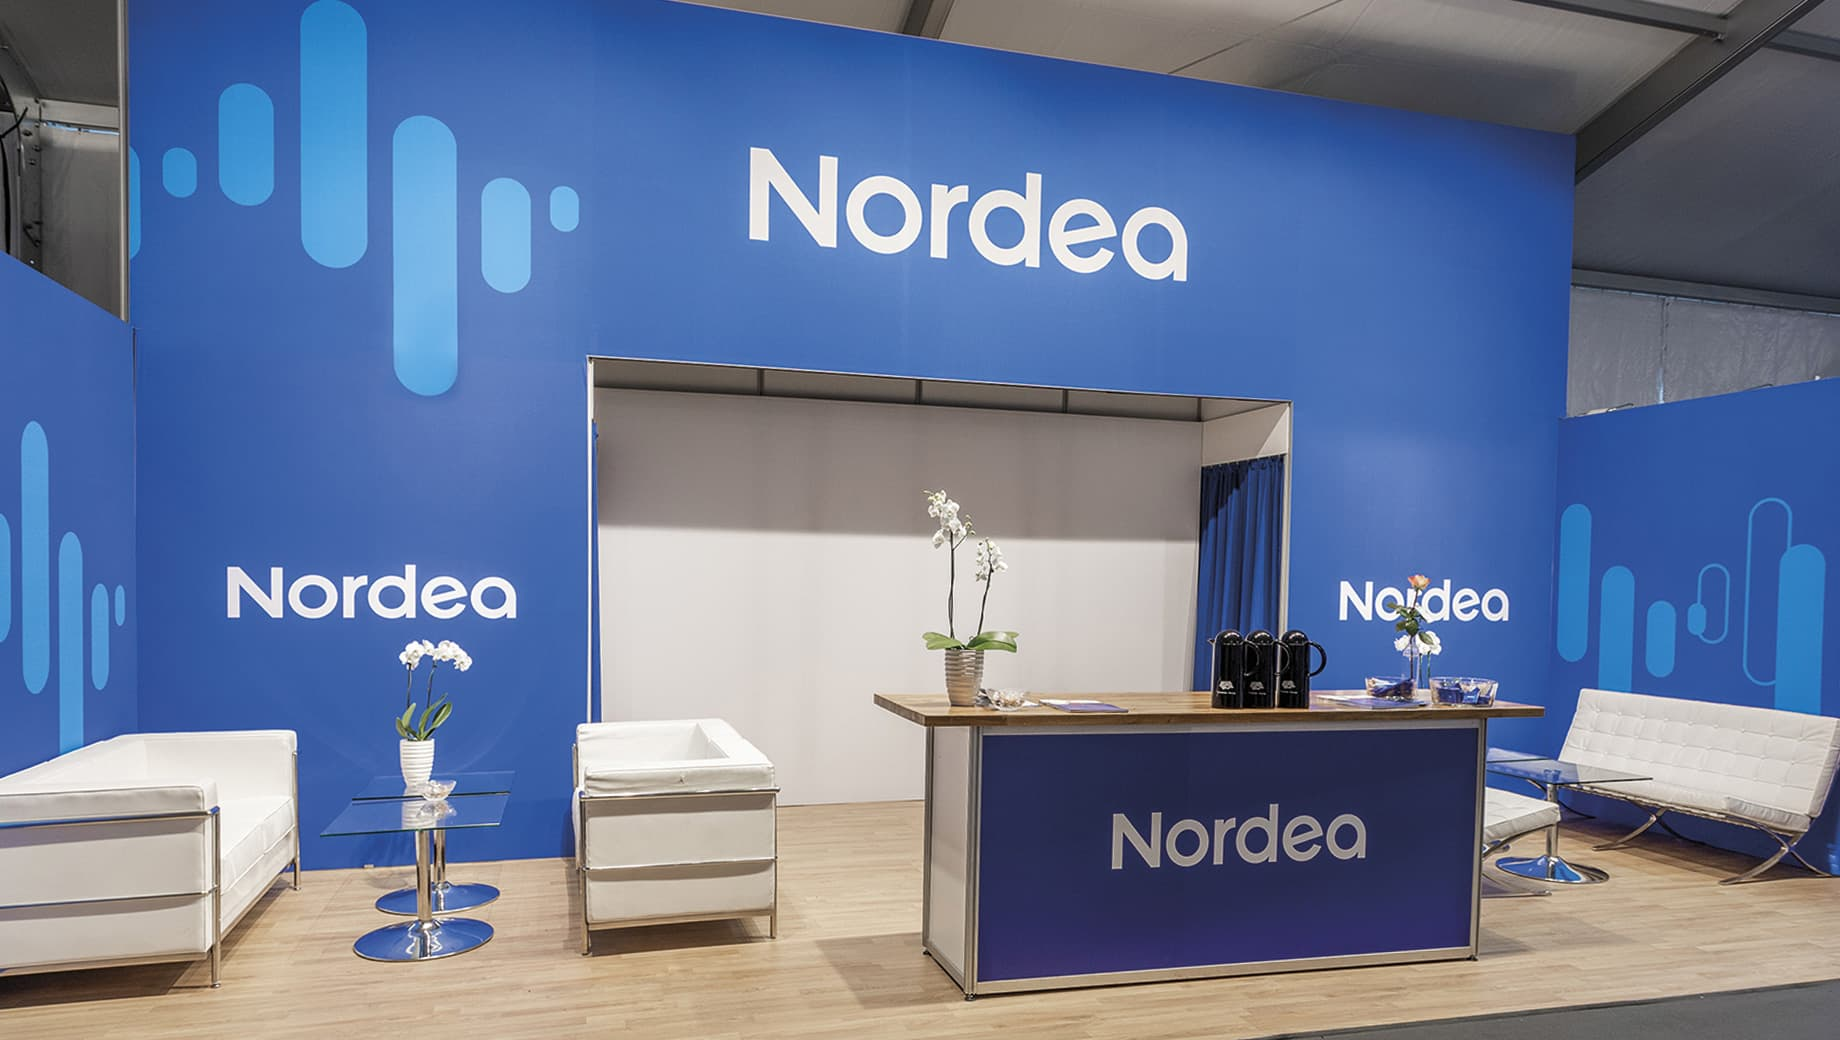 Nordea - Nor Fishing